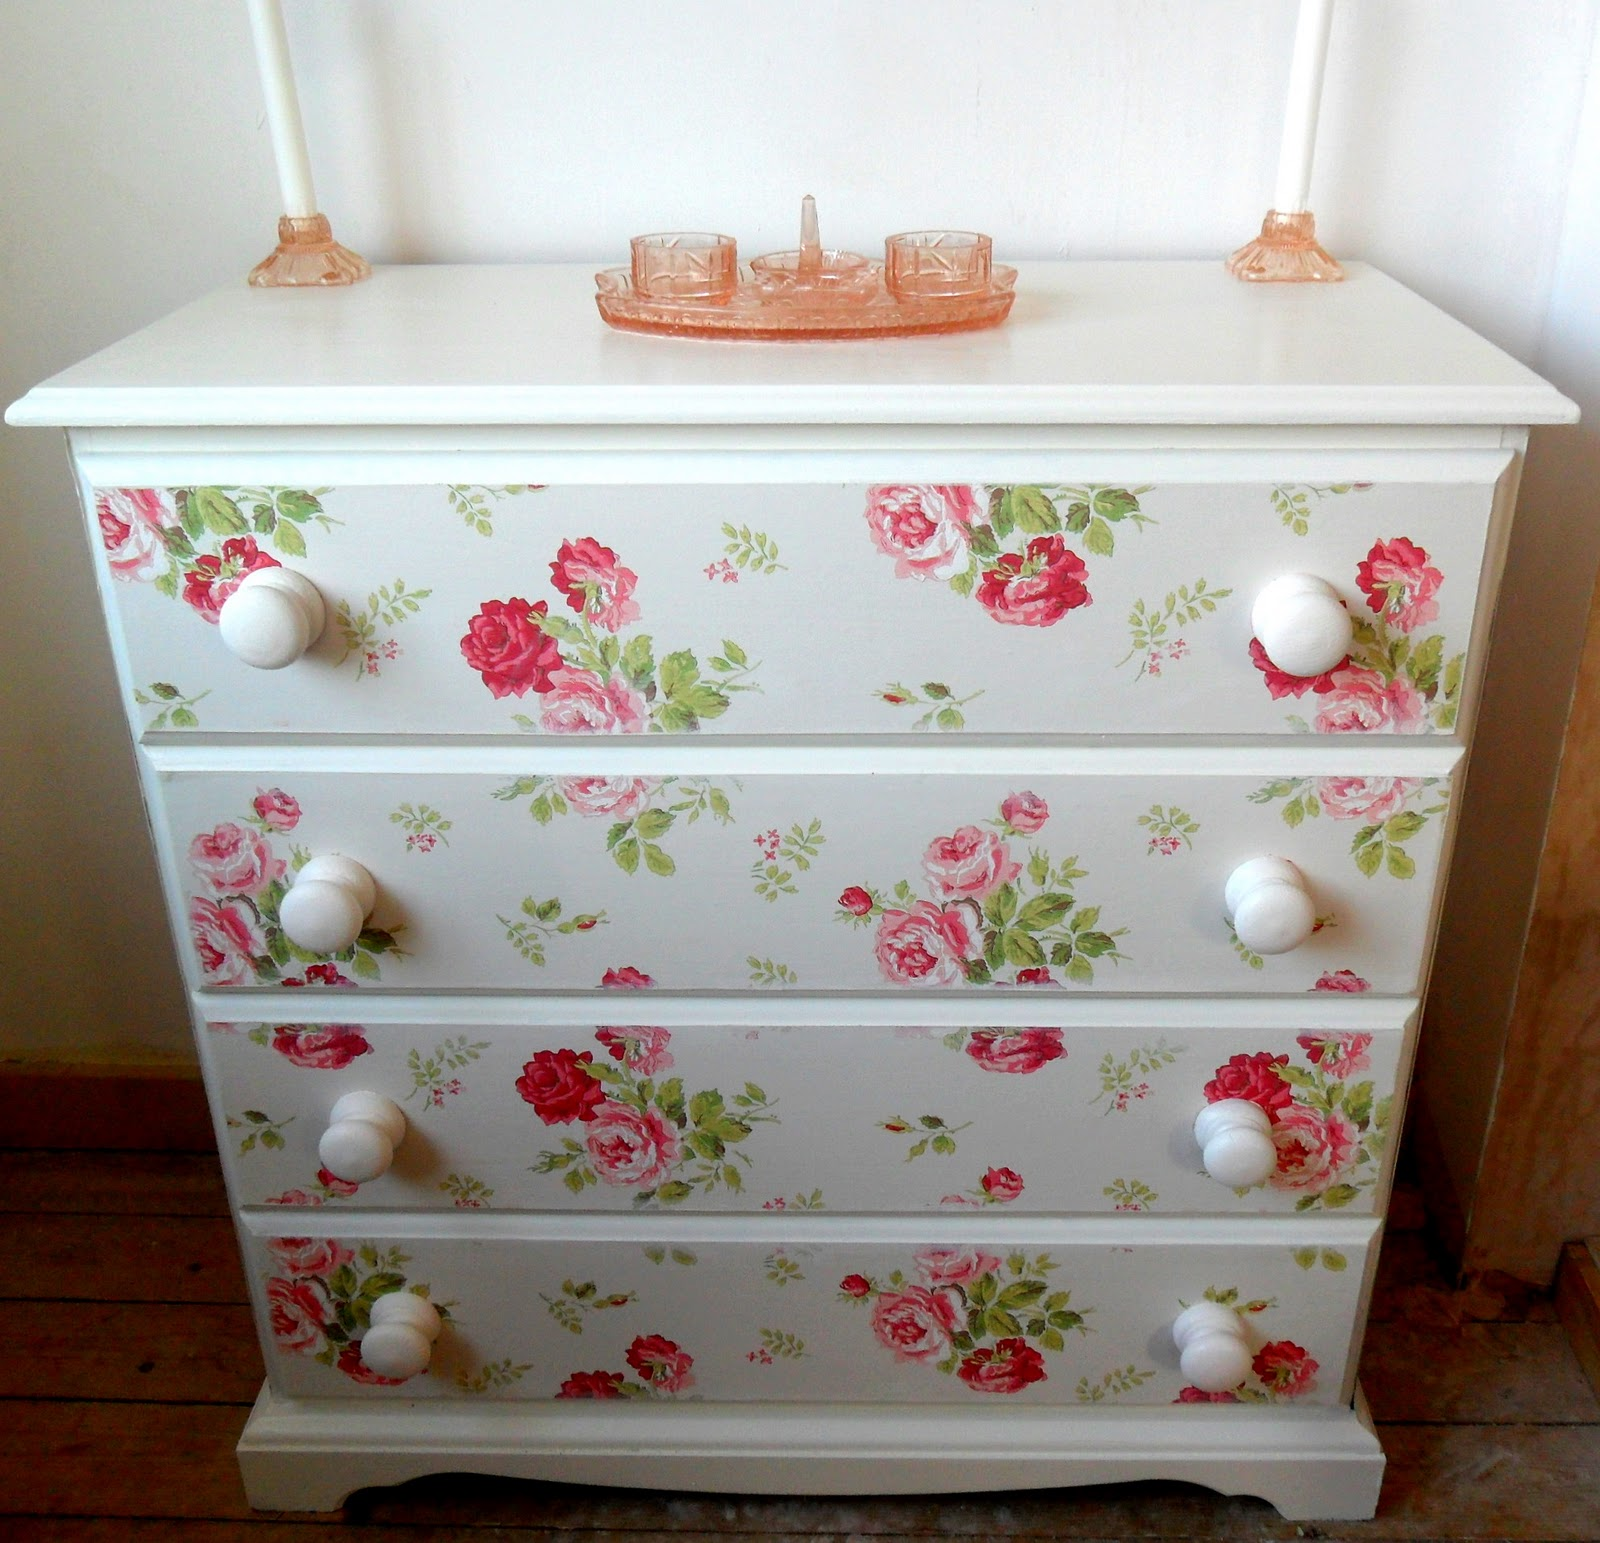 Mary Poppins The Chest Of Drawers Makeover